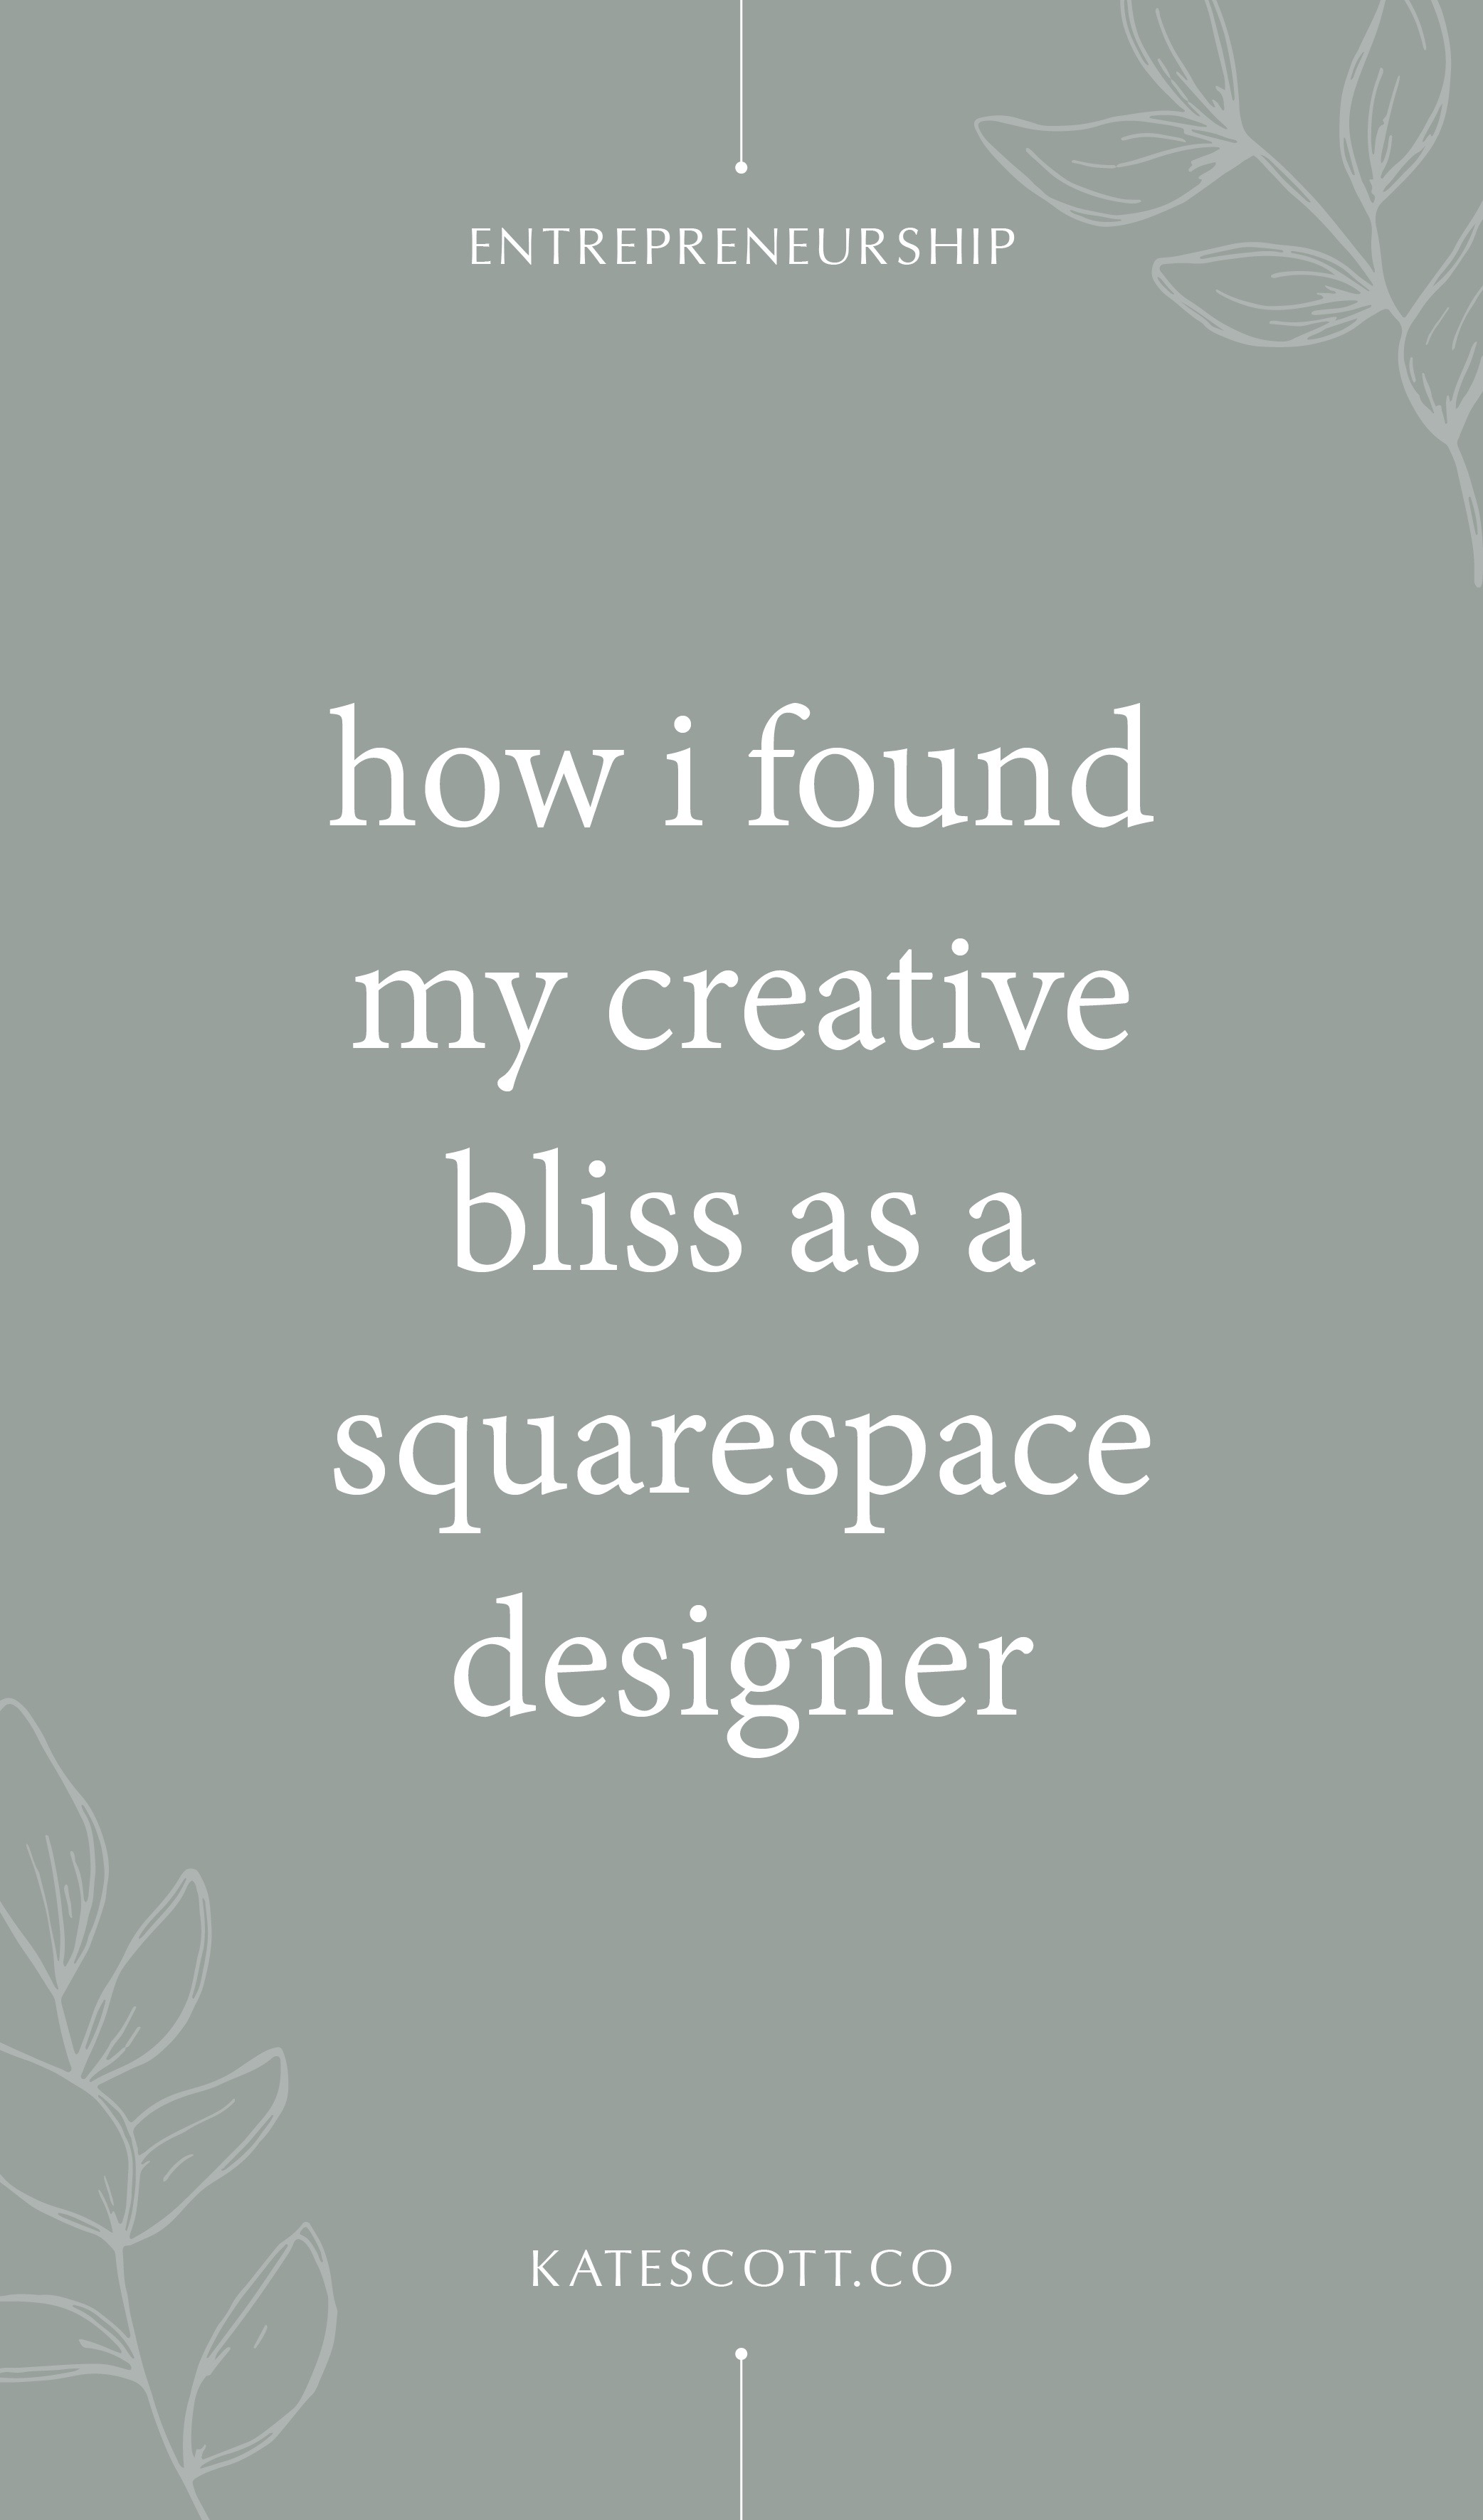 How I Found My Creative Bliss as a Squarespace Designer | Squarespace Design | Custom Squarespace | Web Designer Website | Squarespace Website Design | #squarespace #webdesigner #squarespacedesigner #webdesign